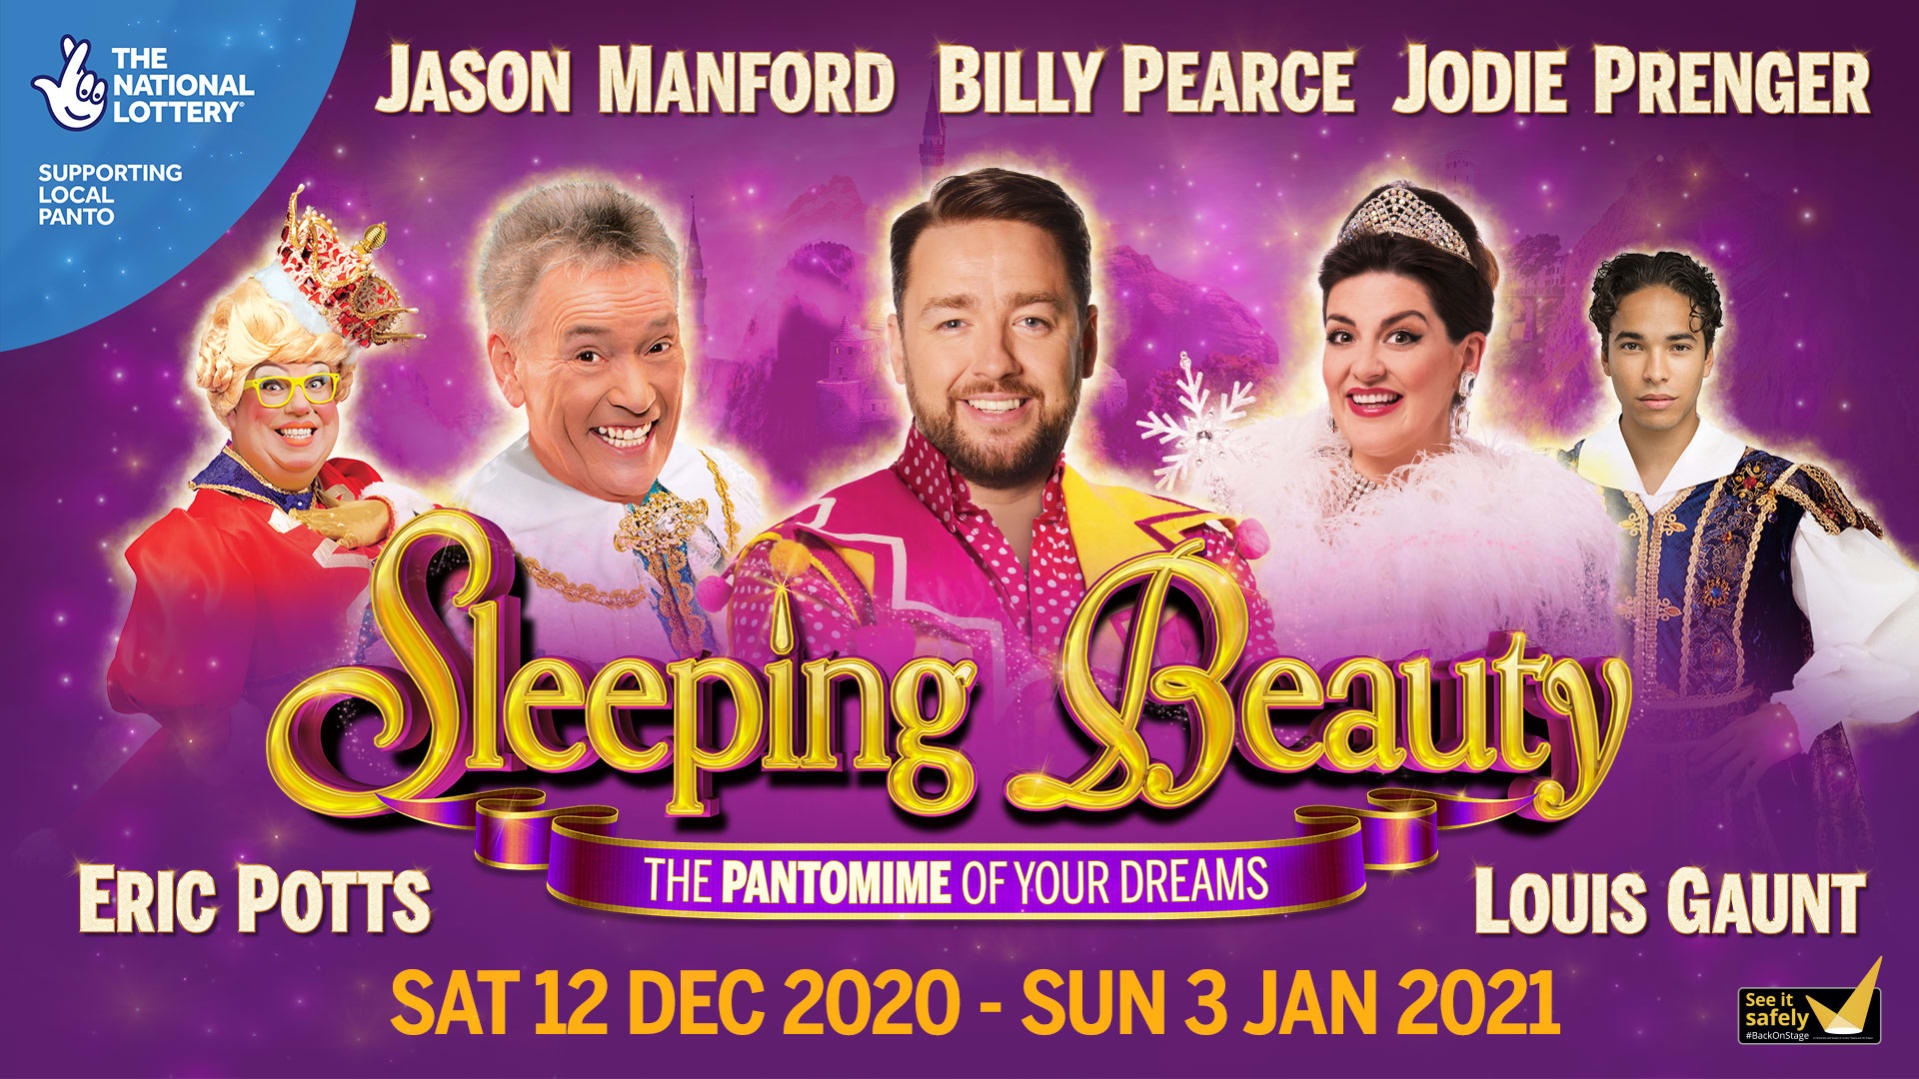 NHS staff can get free tickets to Manchester Opera House's socially-distanced Christmas pantomime, The Manc